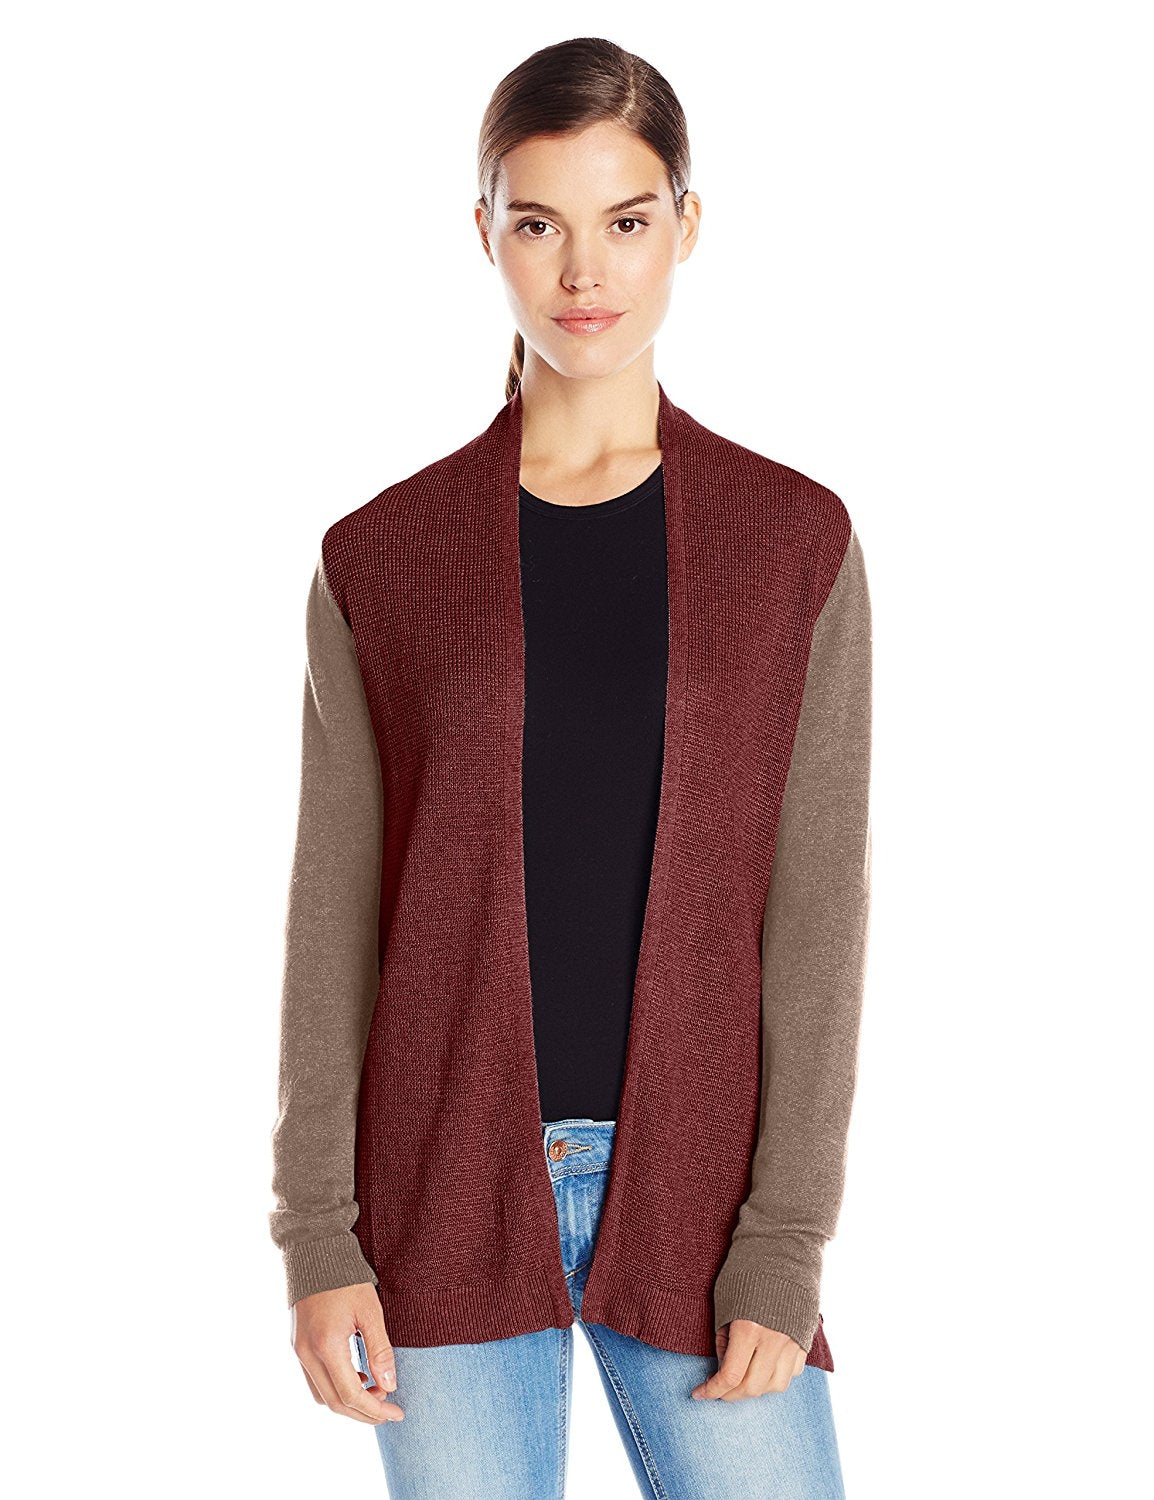 bela.nyc Women's Mona Waffle Stitch Open Cardigan Sweater